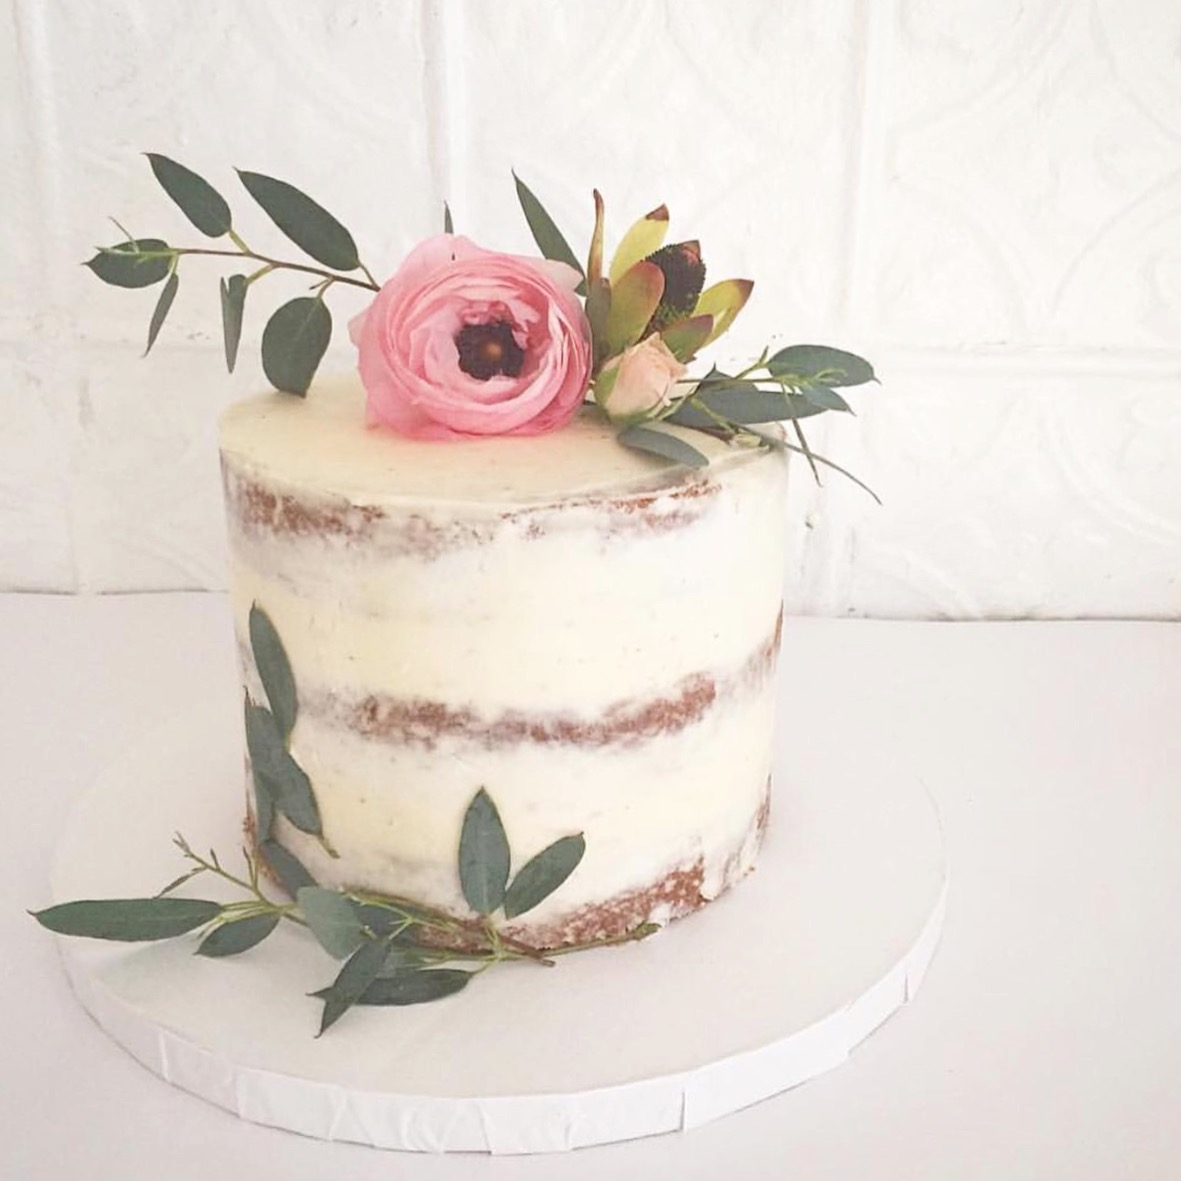 Beautiful Wedding Cakes By The Baking Grounds Bakery Café: Luckybird — Hand Crafted Cakes